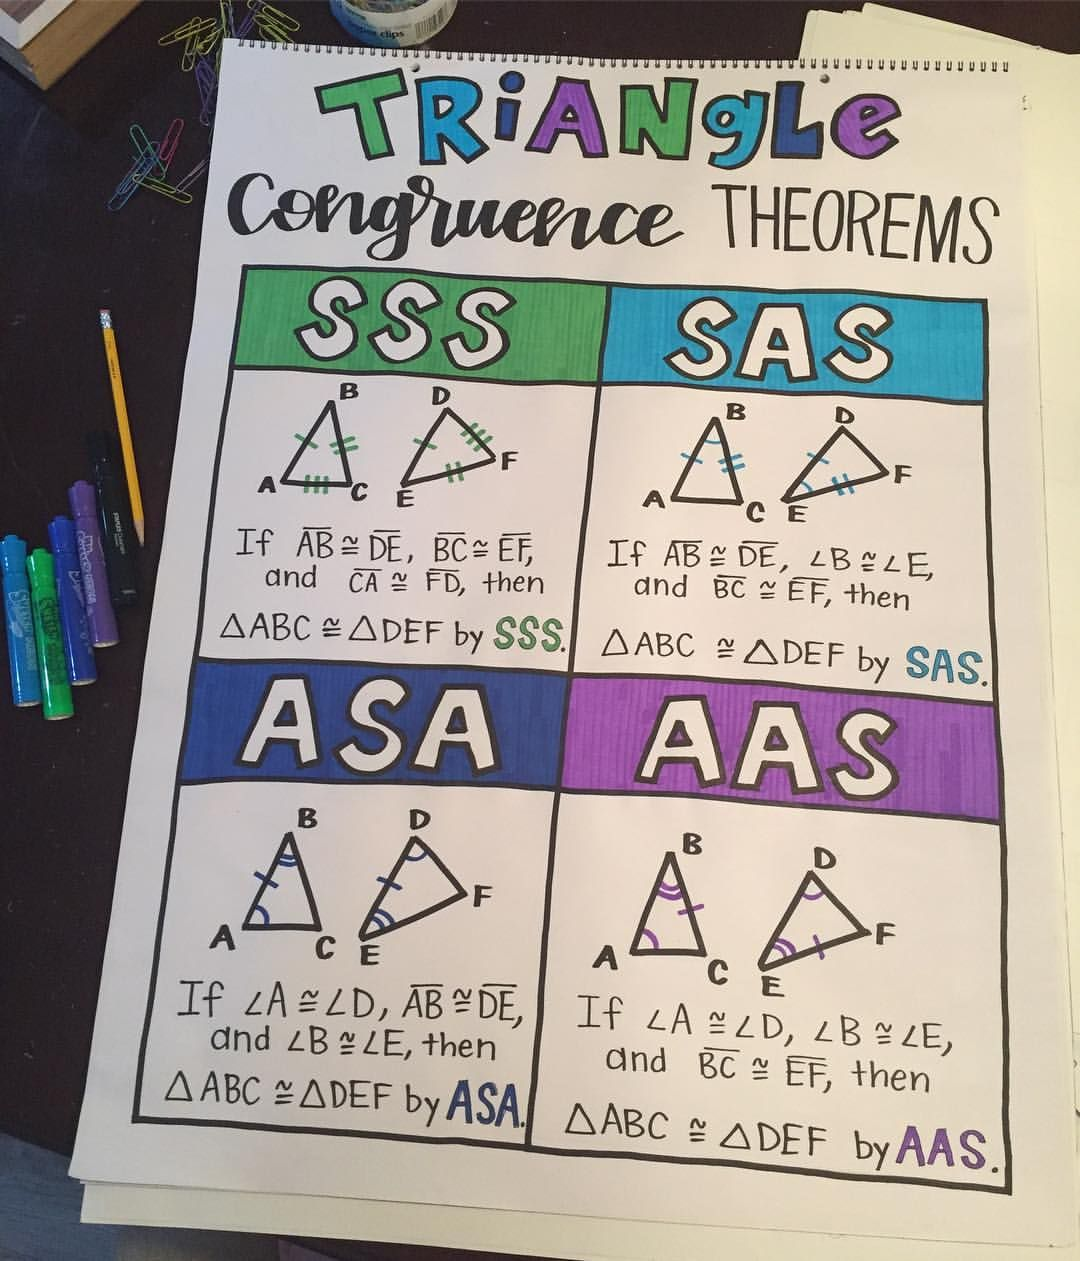 small resolution of I've got so much SAS 💁🏼🔼 Triangle Congruence Theorems anchor chart for  my #GEOMETRY friends 💚?…   Geometry high school